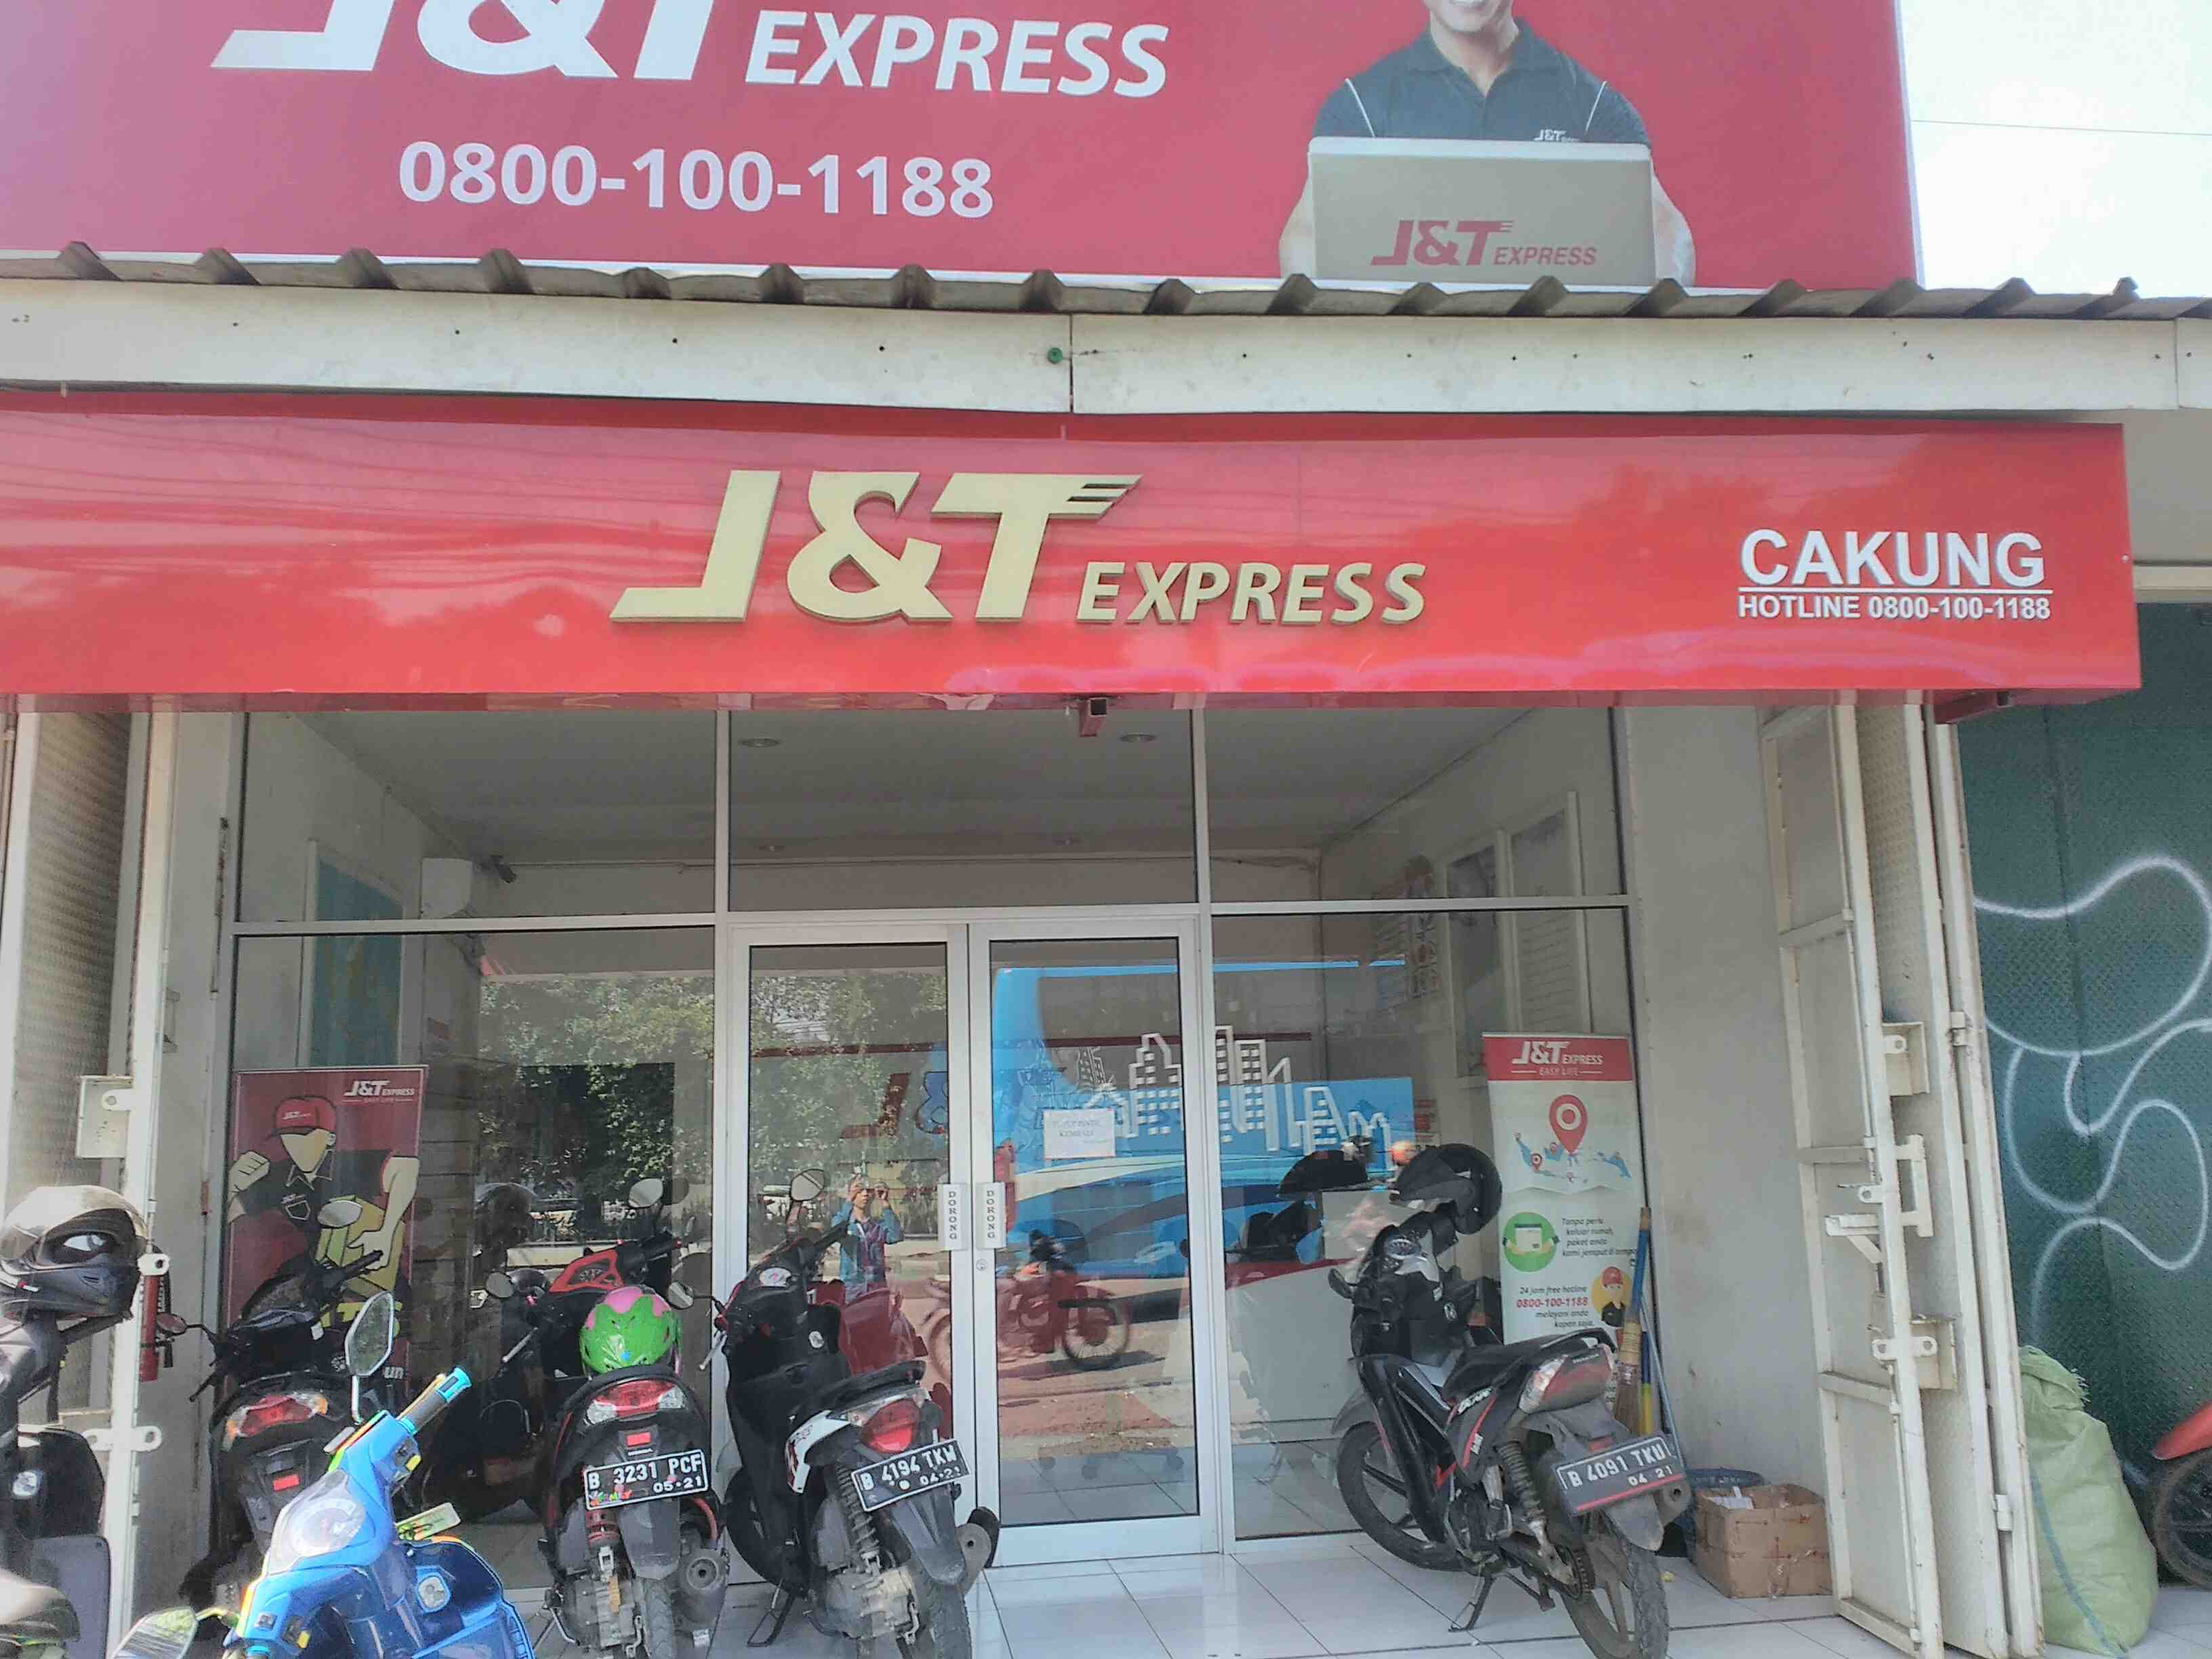 Foto: J&T Expres Cakung